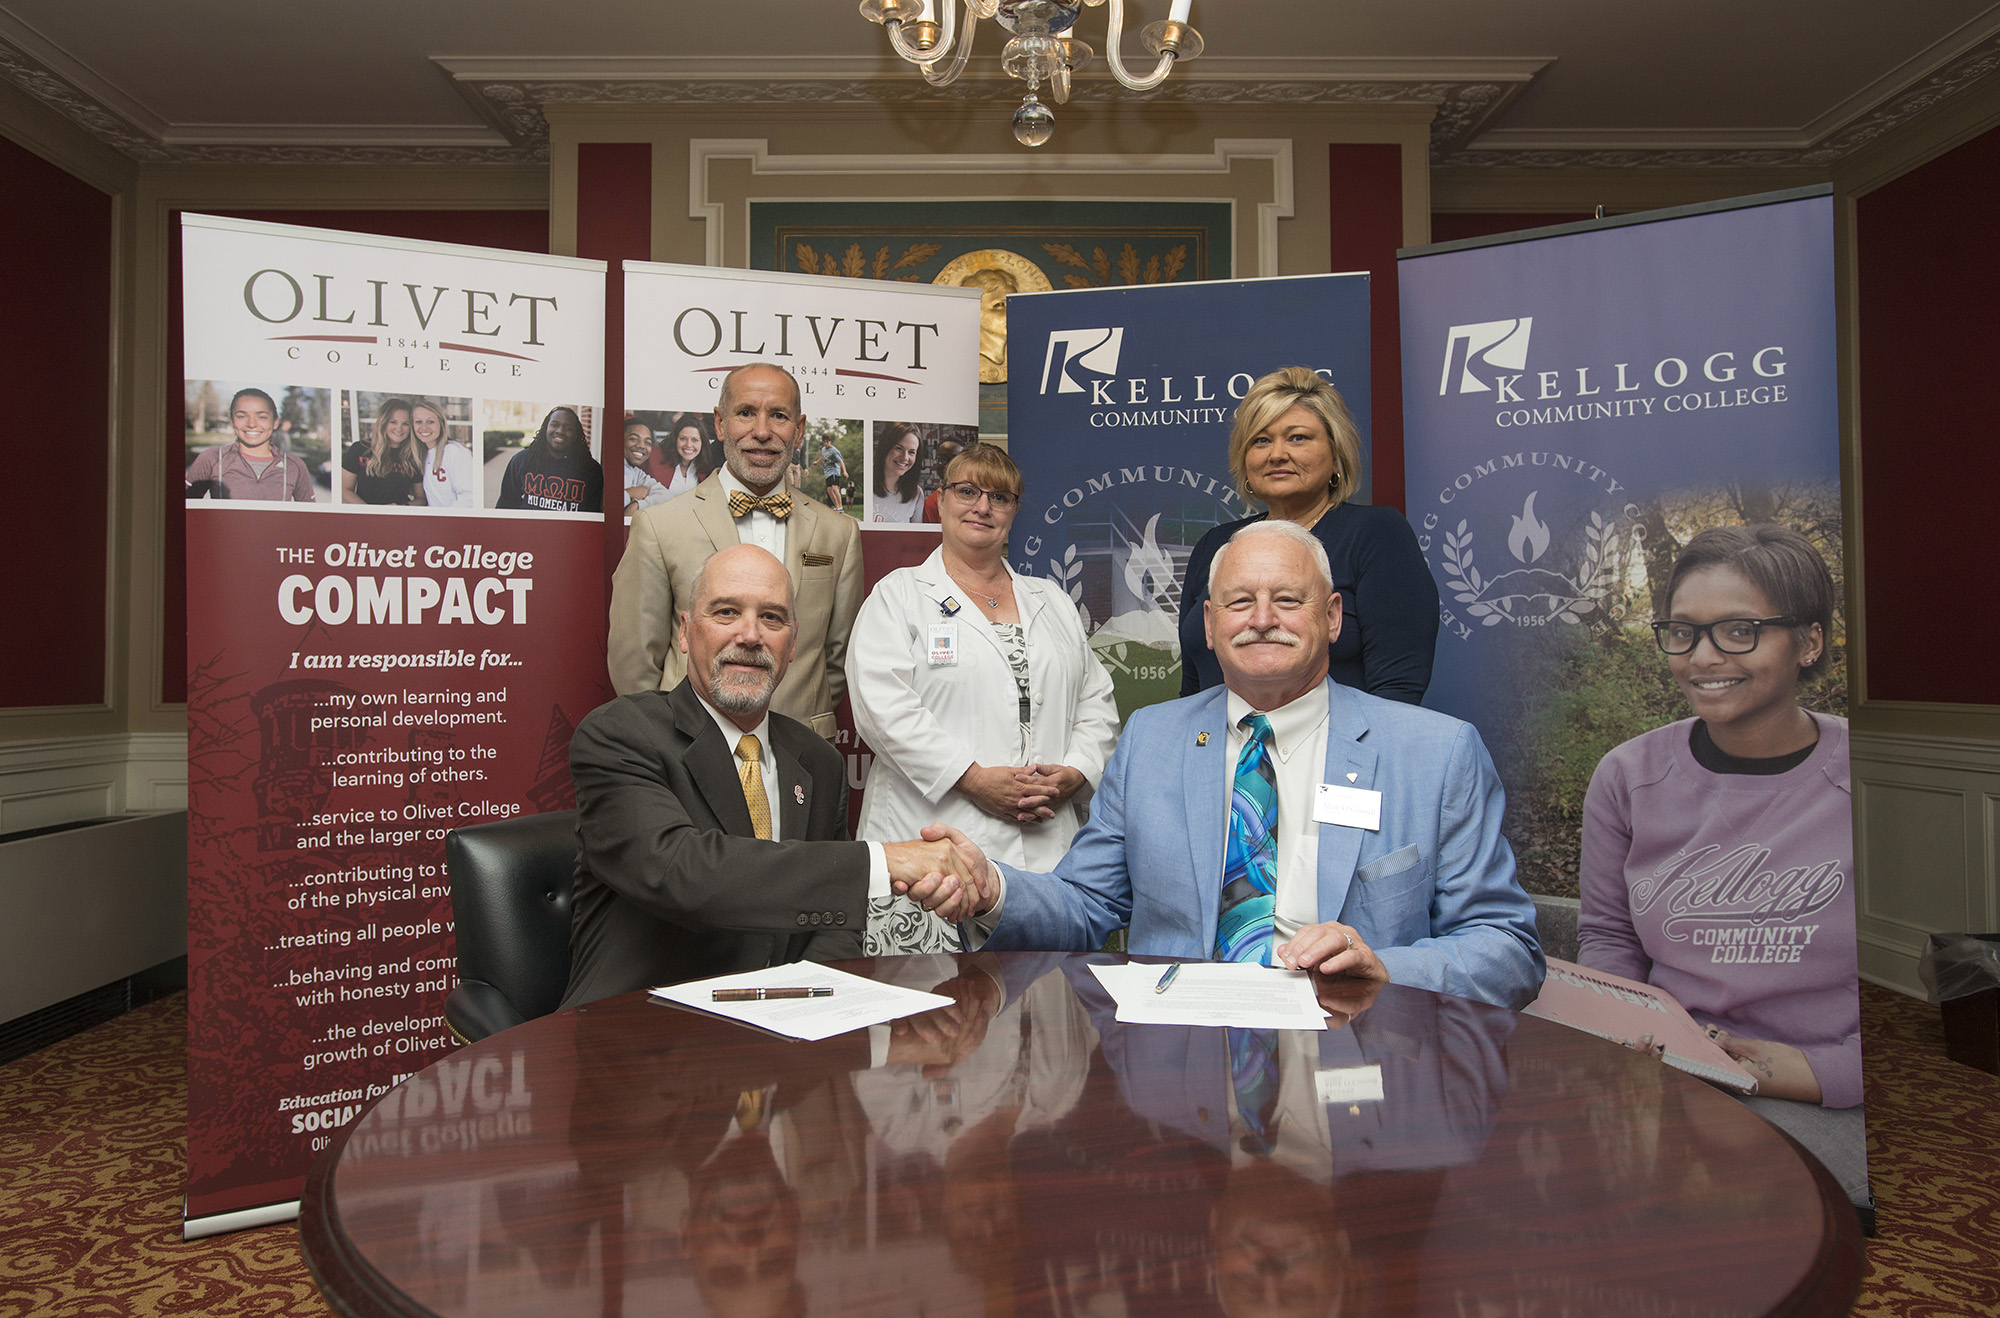 Pictured in the above signing photo taken at Olivet College on June 21 are, in the front row, from left to right, Olivet College President Steven M. Corey, Ph.D., and KCC President Mark O'Connell. Pictured in the back row, from left to right, are KCC Vice President for Instruction Dr. Kevin Rabineau; Olivet College Director of Nursing Education and Assistant Professor of Nursing Dr. Lorraine Manier; and KCC Dean of Workforce Development Dr. Jan Karazim.